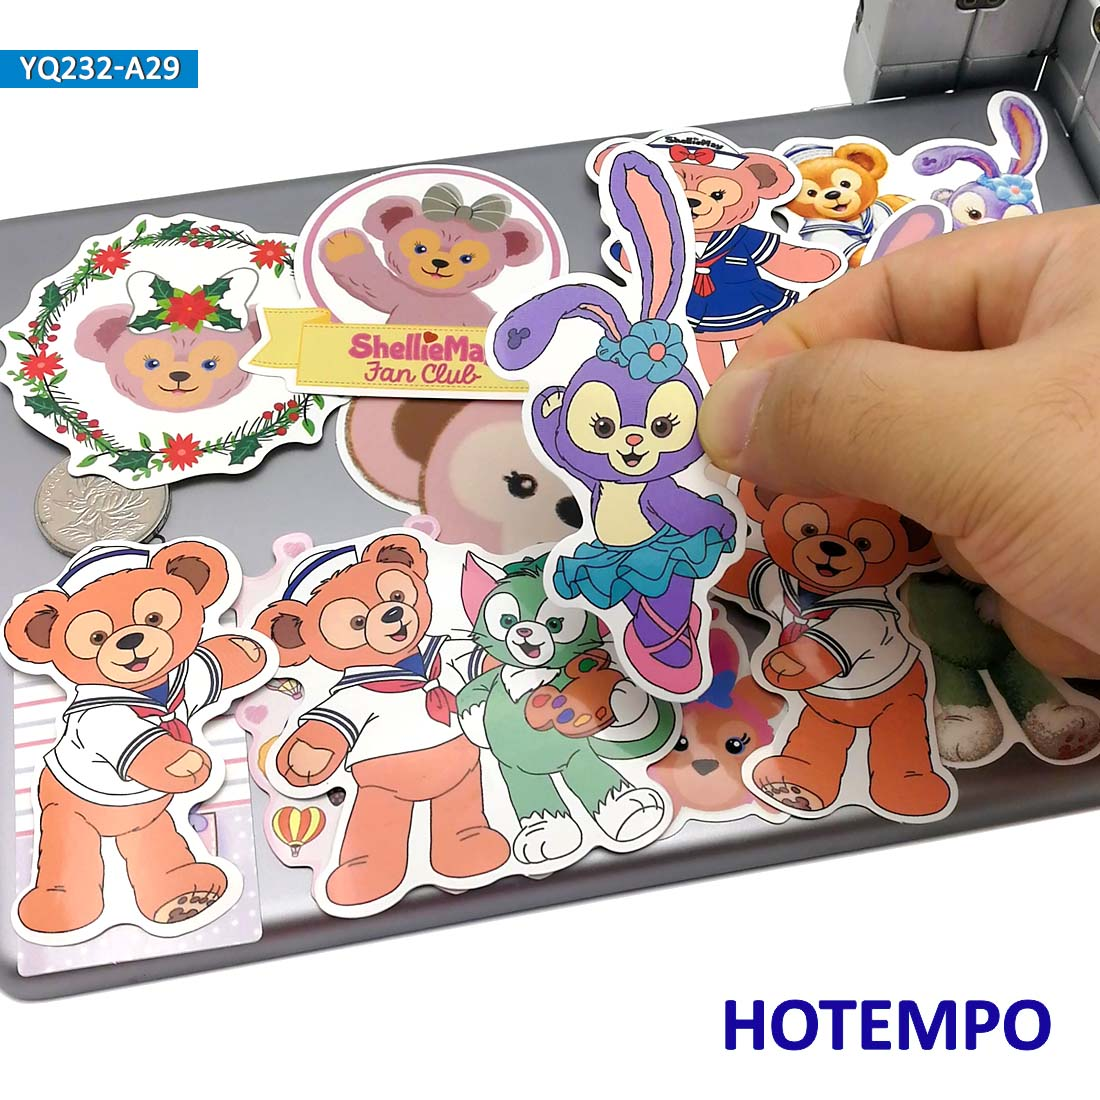 30pcs Cartoon ShellieMay Bear Duffy Stickers For Mobile Phone Laptop Luggage Guitar Case Skateboard Fixed Gear Bike Car Stickers